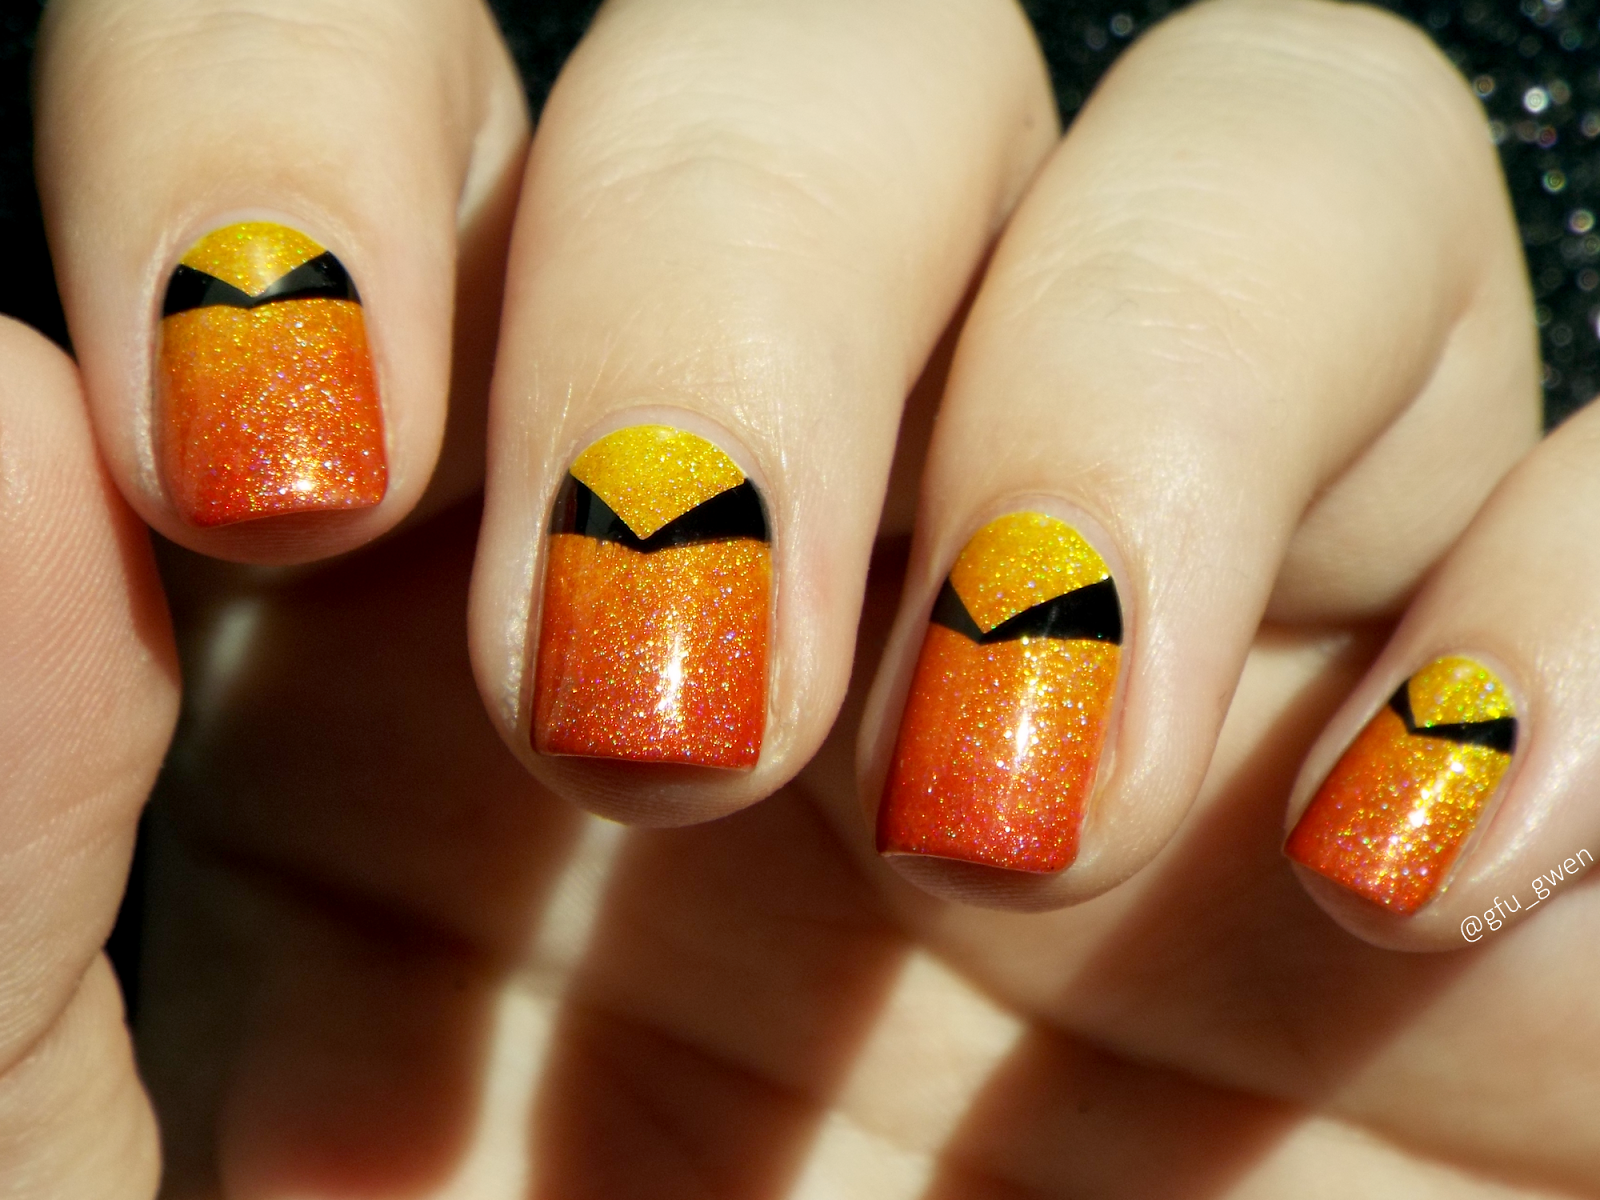 Inspired by tracer from overwatch video game paint it black inspired by tracer from overwatch video game paint it black house of the rising sun may 2014 february 2015 monthly monthlies enchanted polish ep prinsesfo Image collections